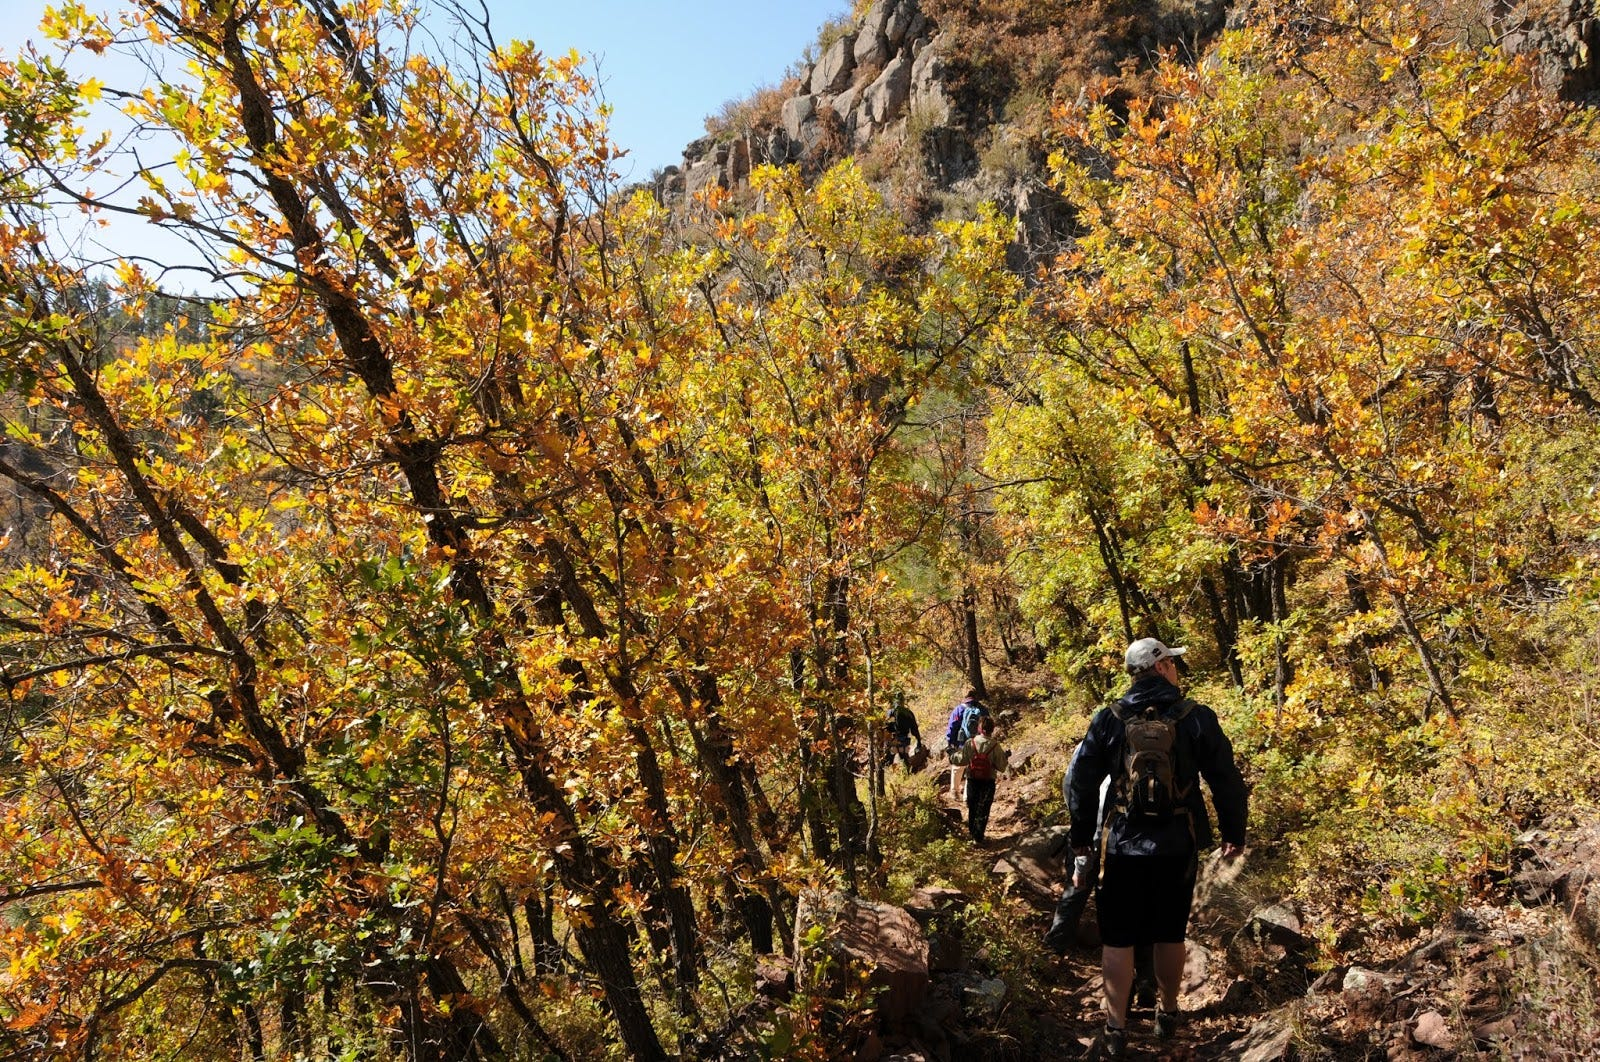 Looking for fall colors in Arizona? Try these less-known hiking trails